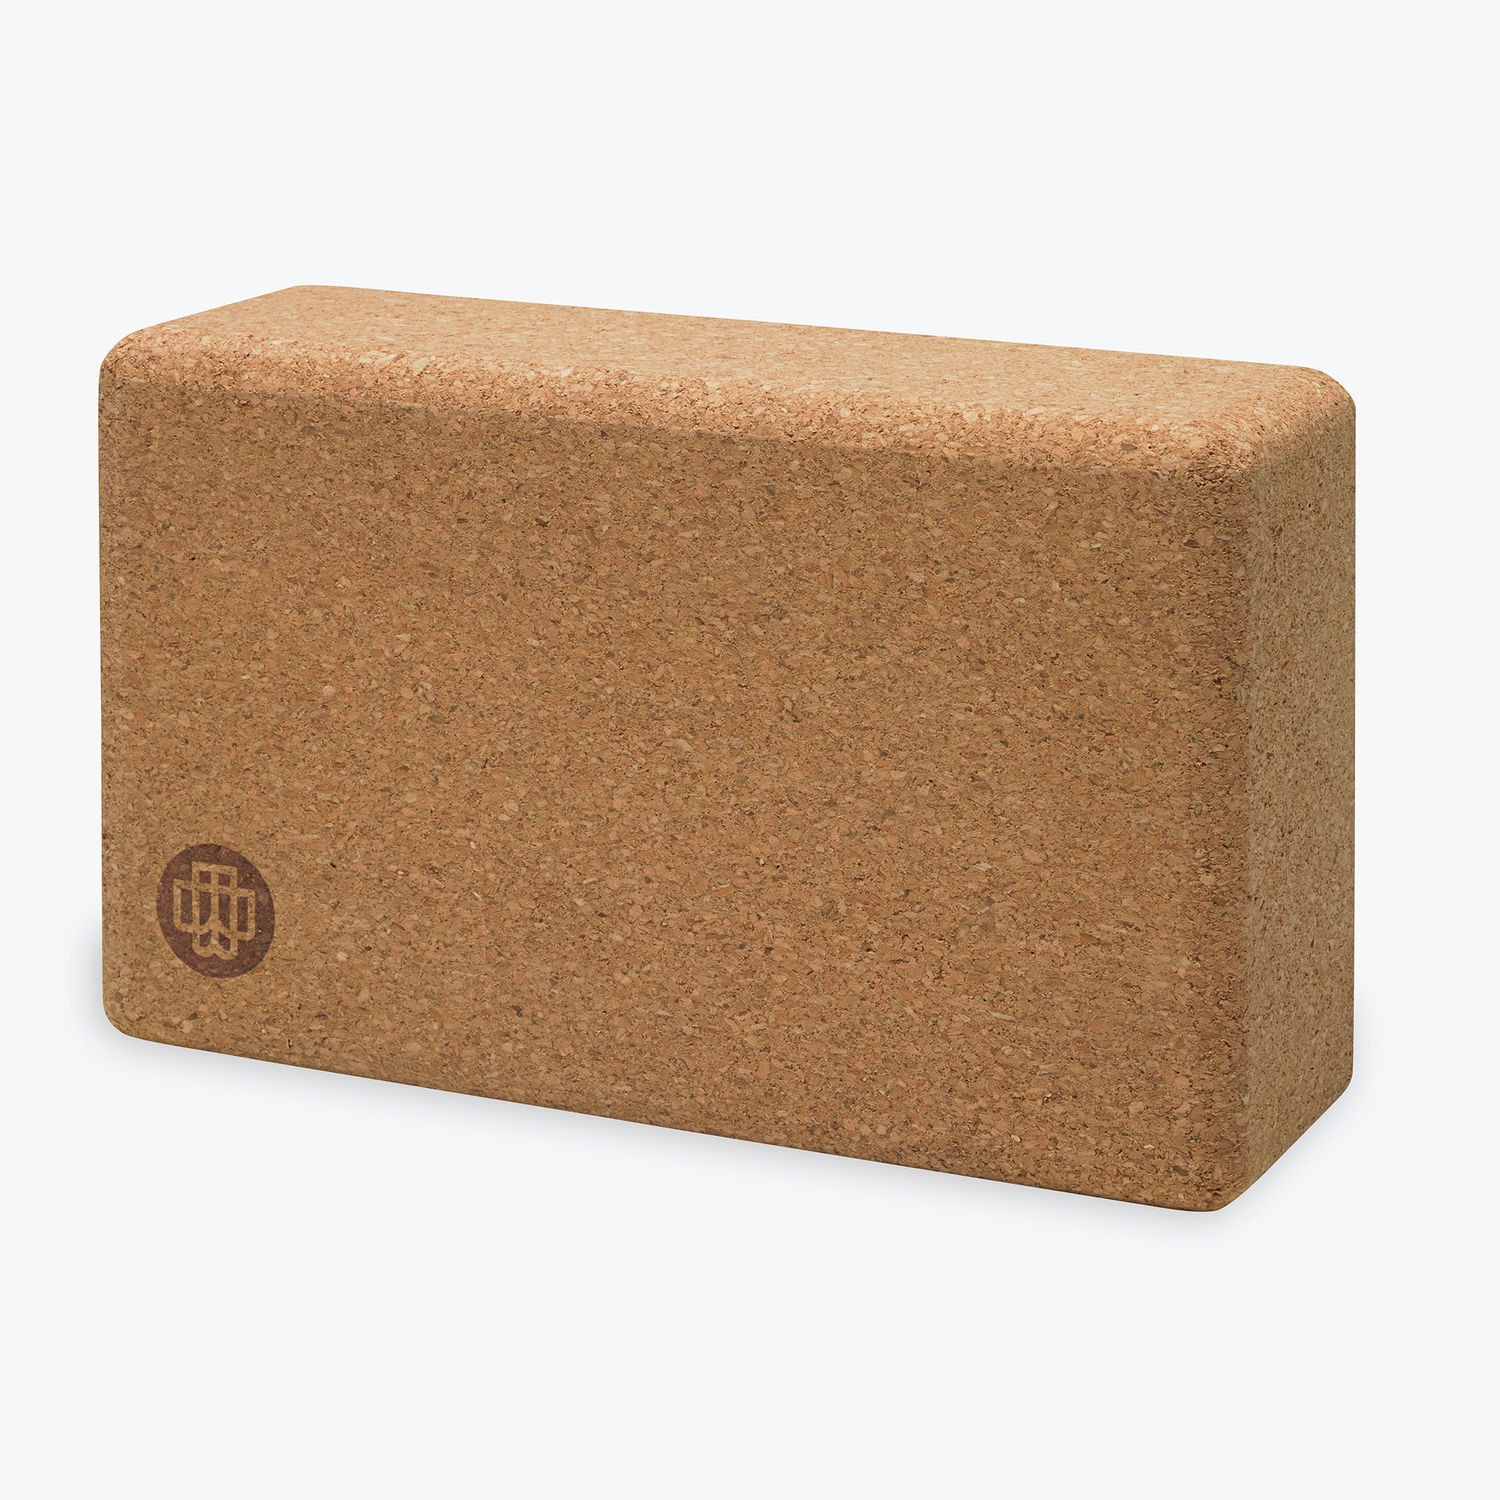 Apartminty Fresh Picks: Get Fit In Your Apartment | Natural Cork Yoga Block